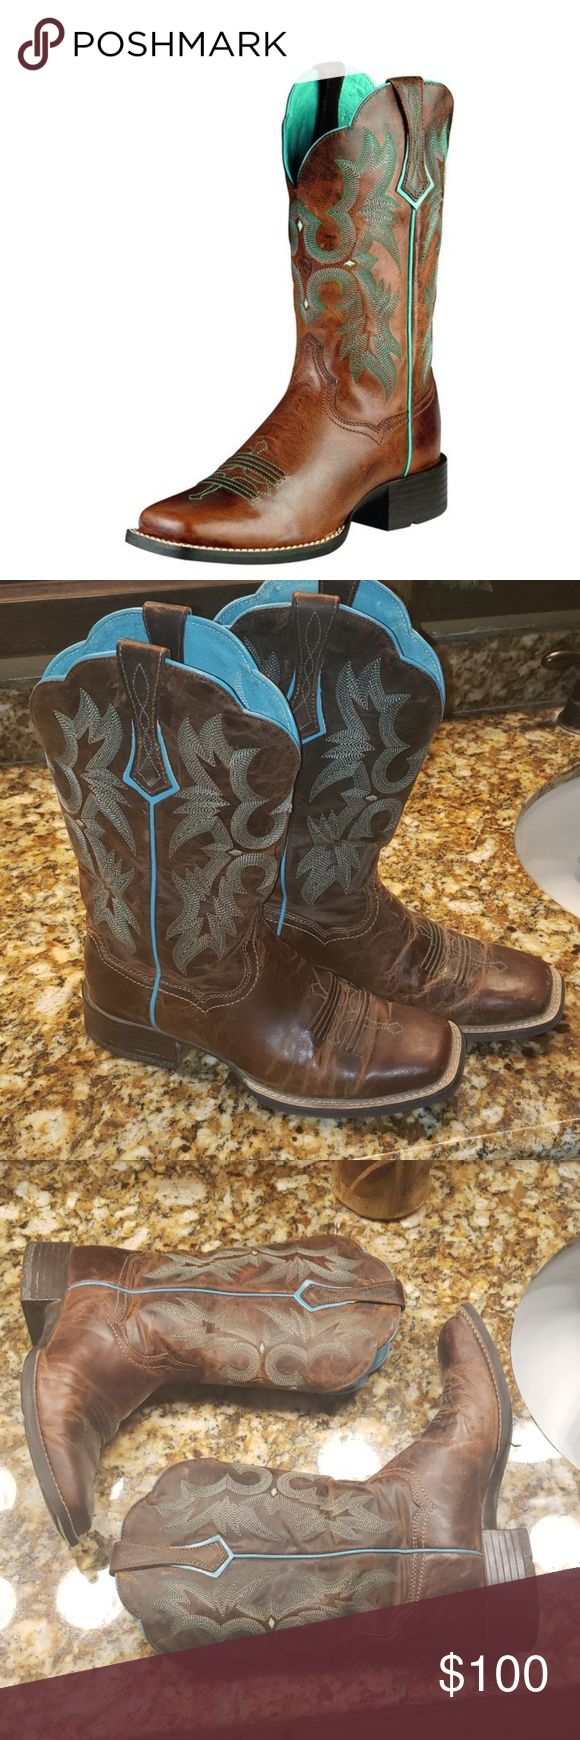 Ariat Tombstone Western cowboy boots, sz 7B Ariat western leather boots, currently retailing for $179.95. Size 7B which is 7 medium. Teal STYLE # 100…